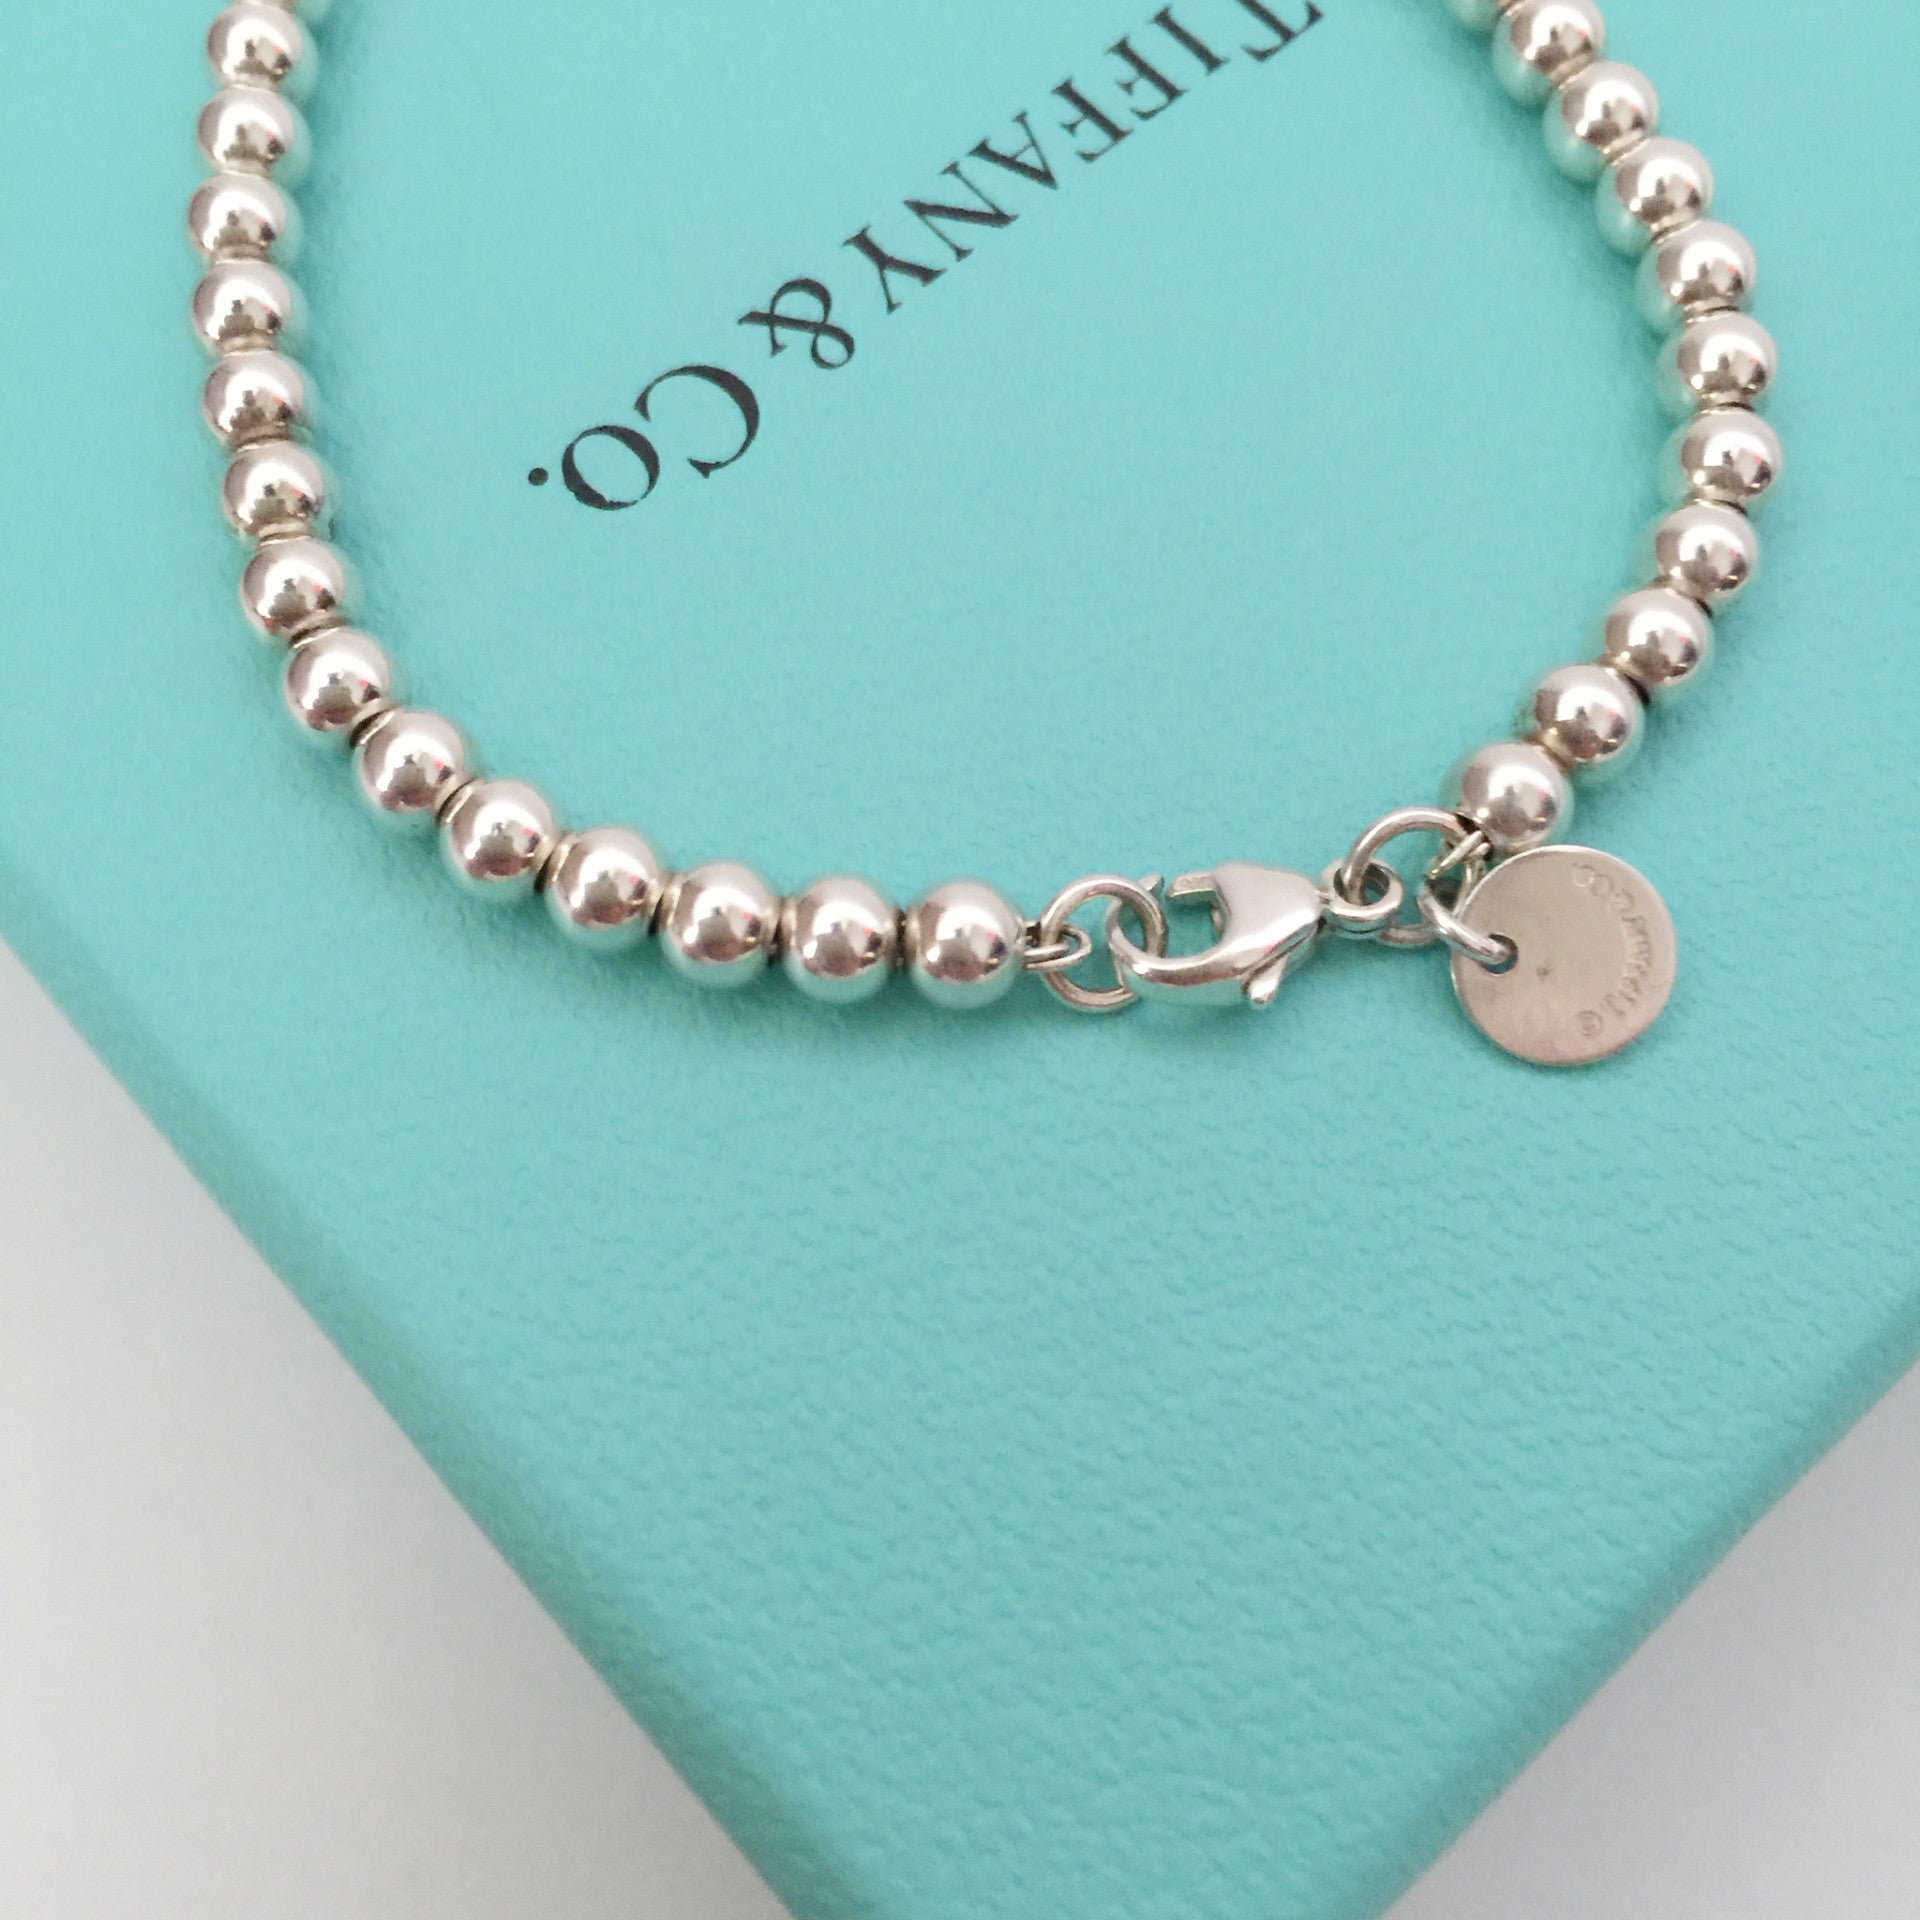 3b47d0662 Authentic Tiffany Bead Bracelet Related Keywords & Suggestions ...